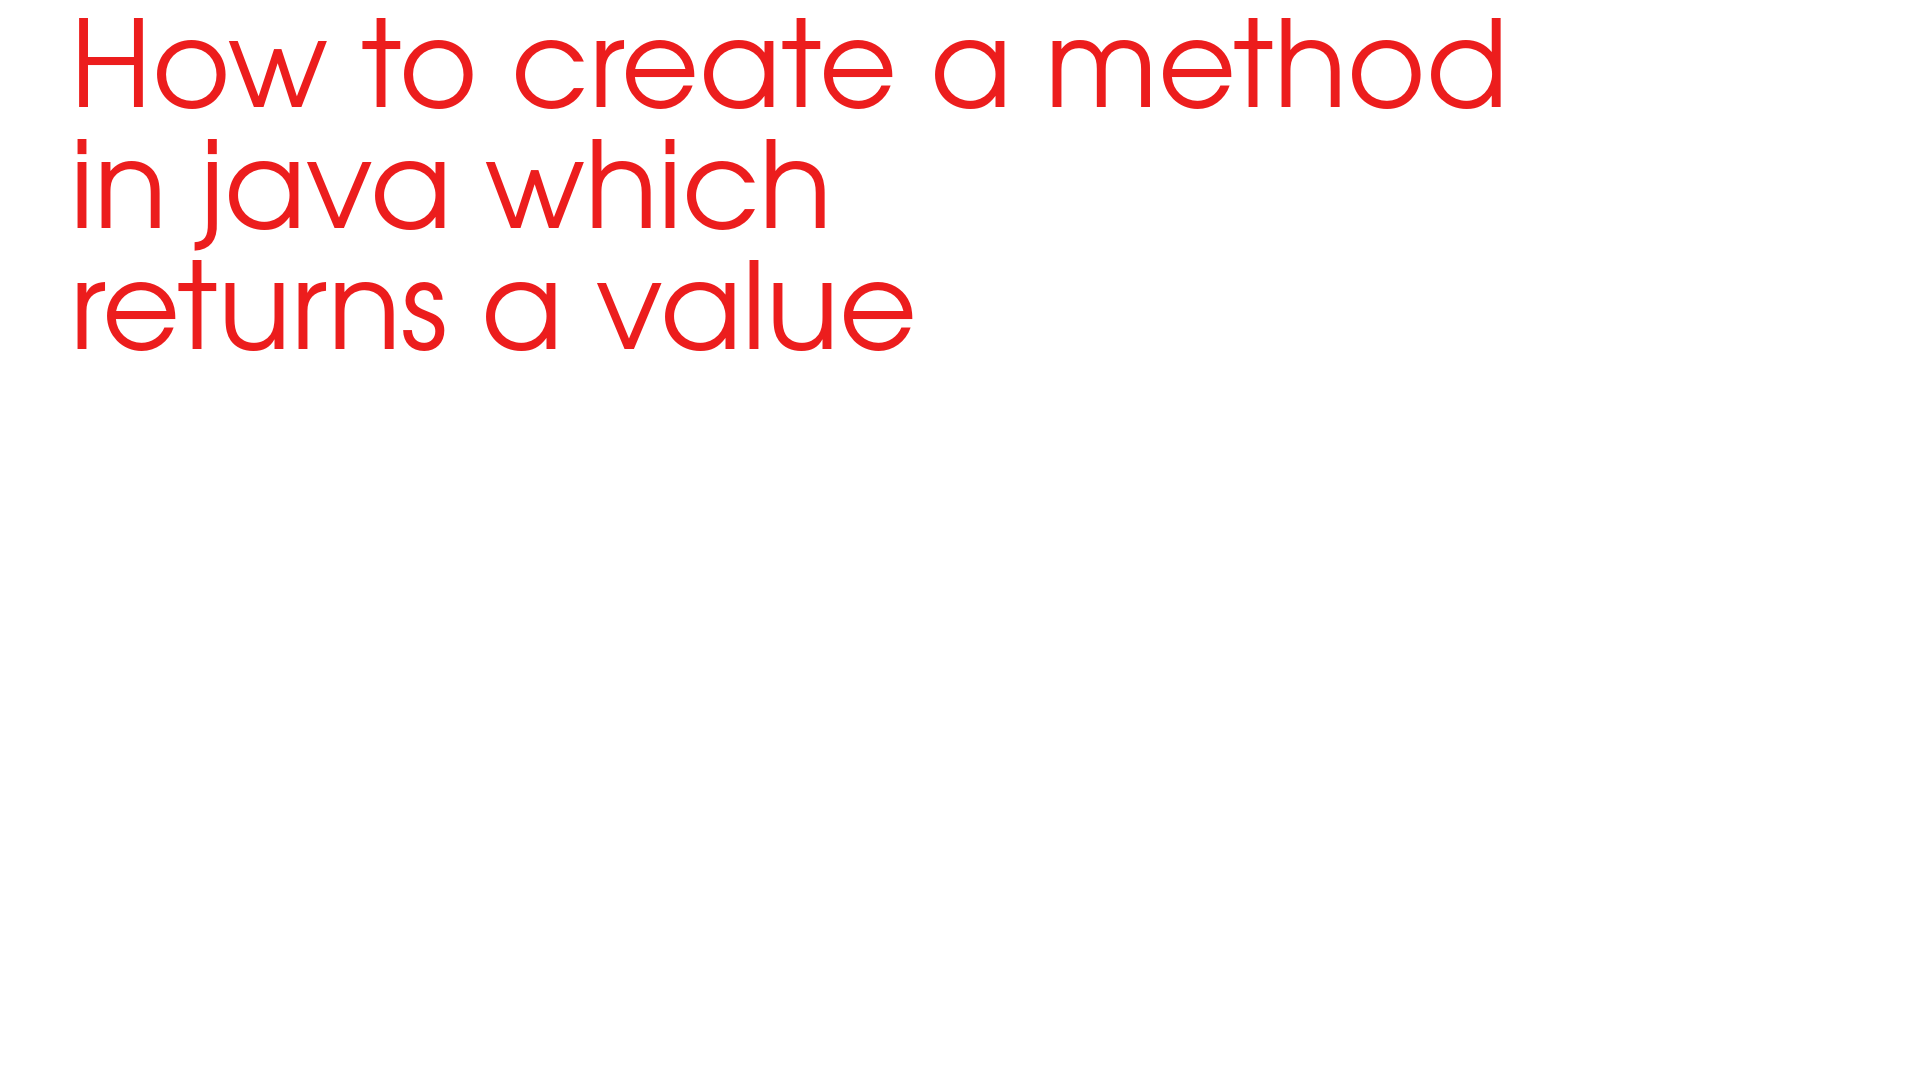 How to create a method in java which returns a value 2020